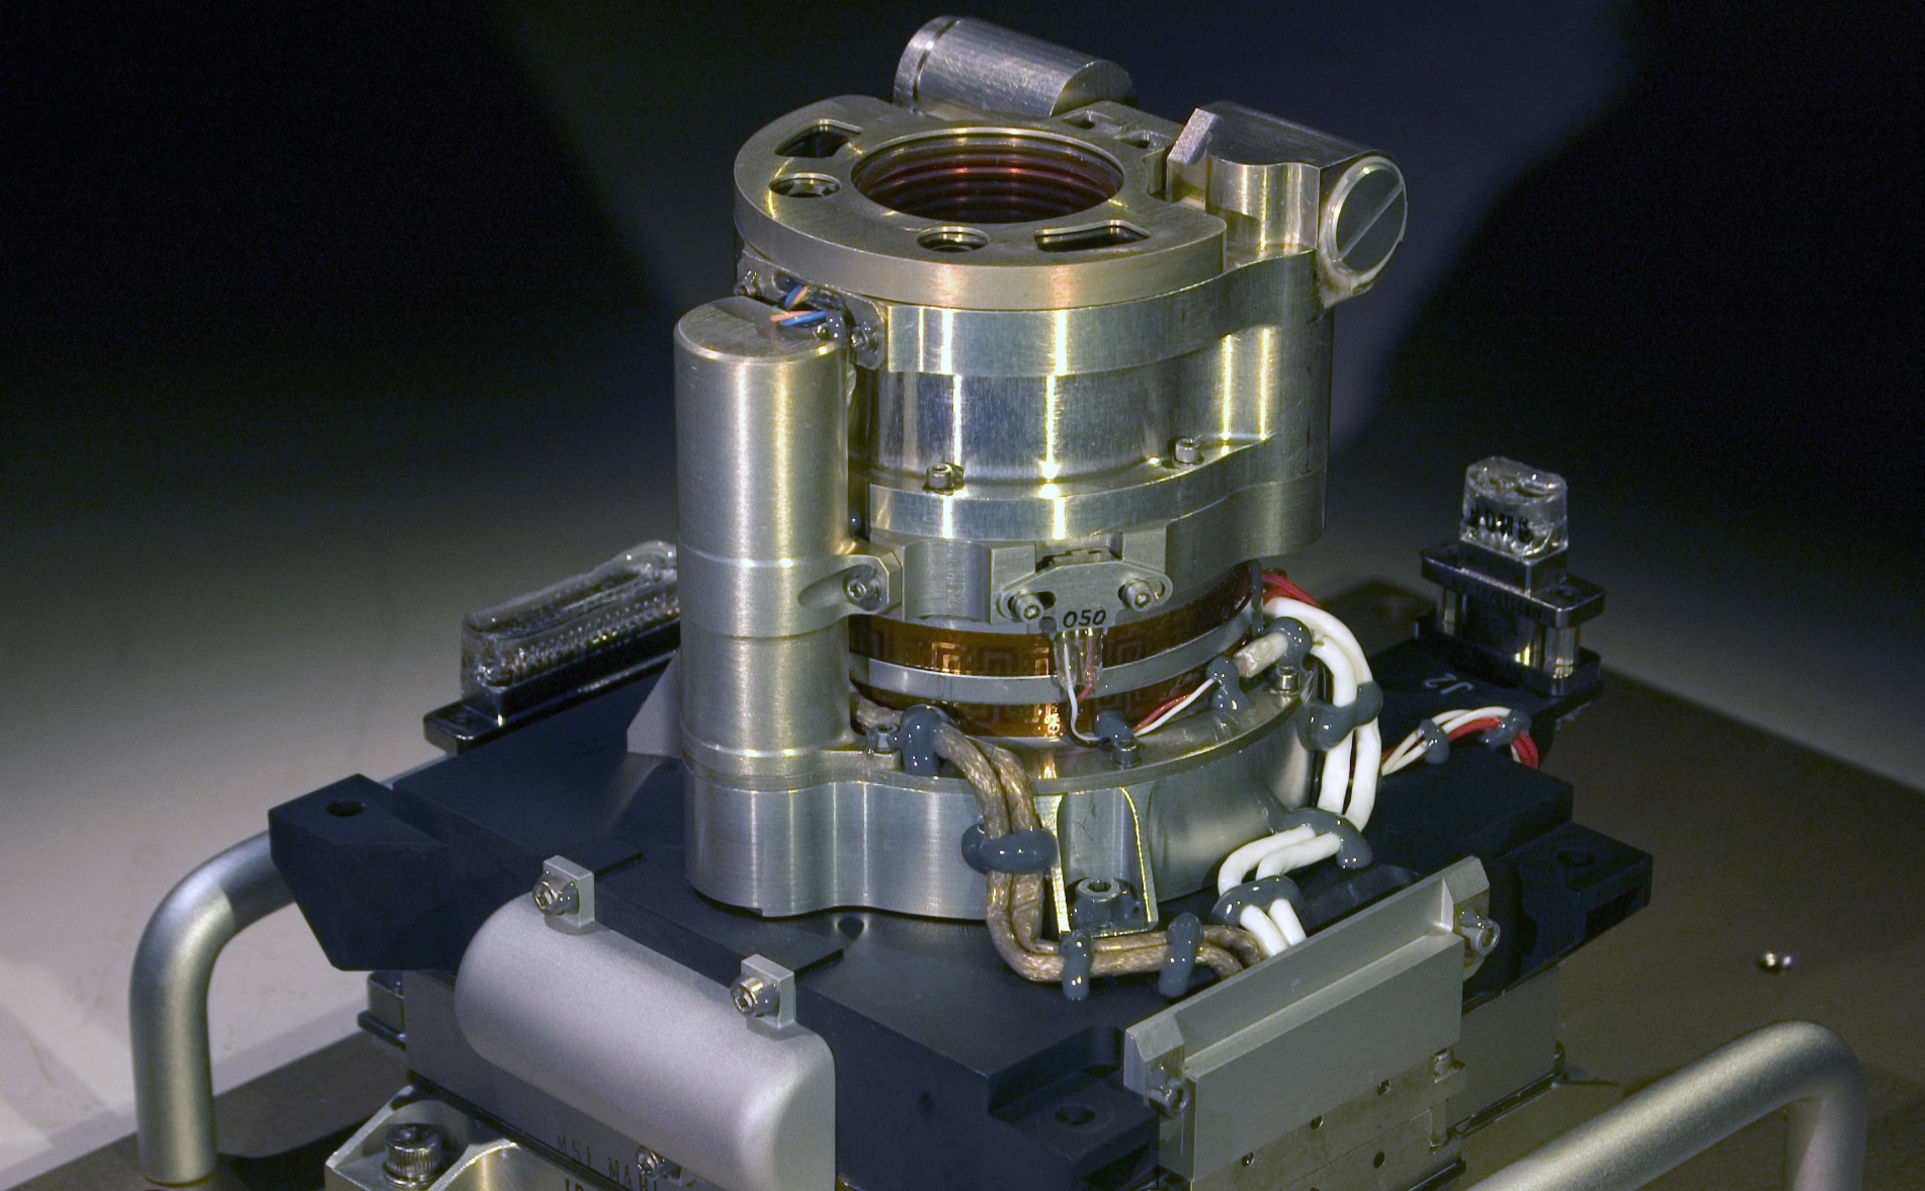 The Mars Hand Lens Imager (MAHLI) camera will fly on NASA's Mars Science Laboratory mission, launching in late 2011.